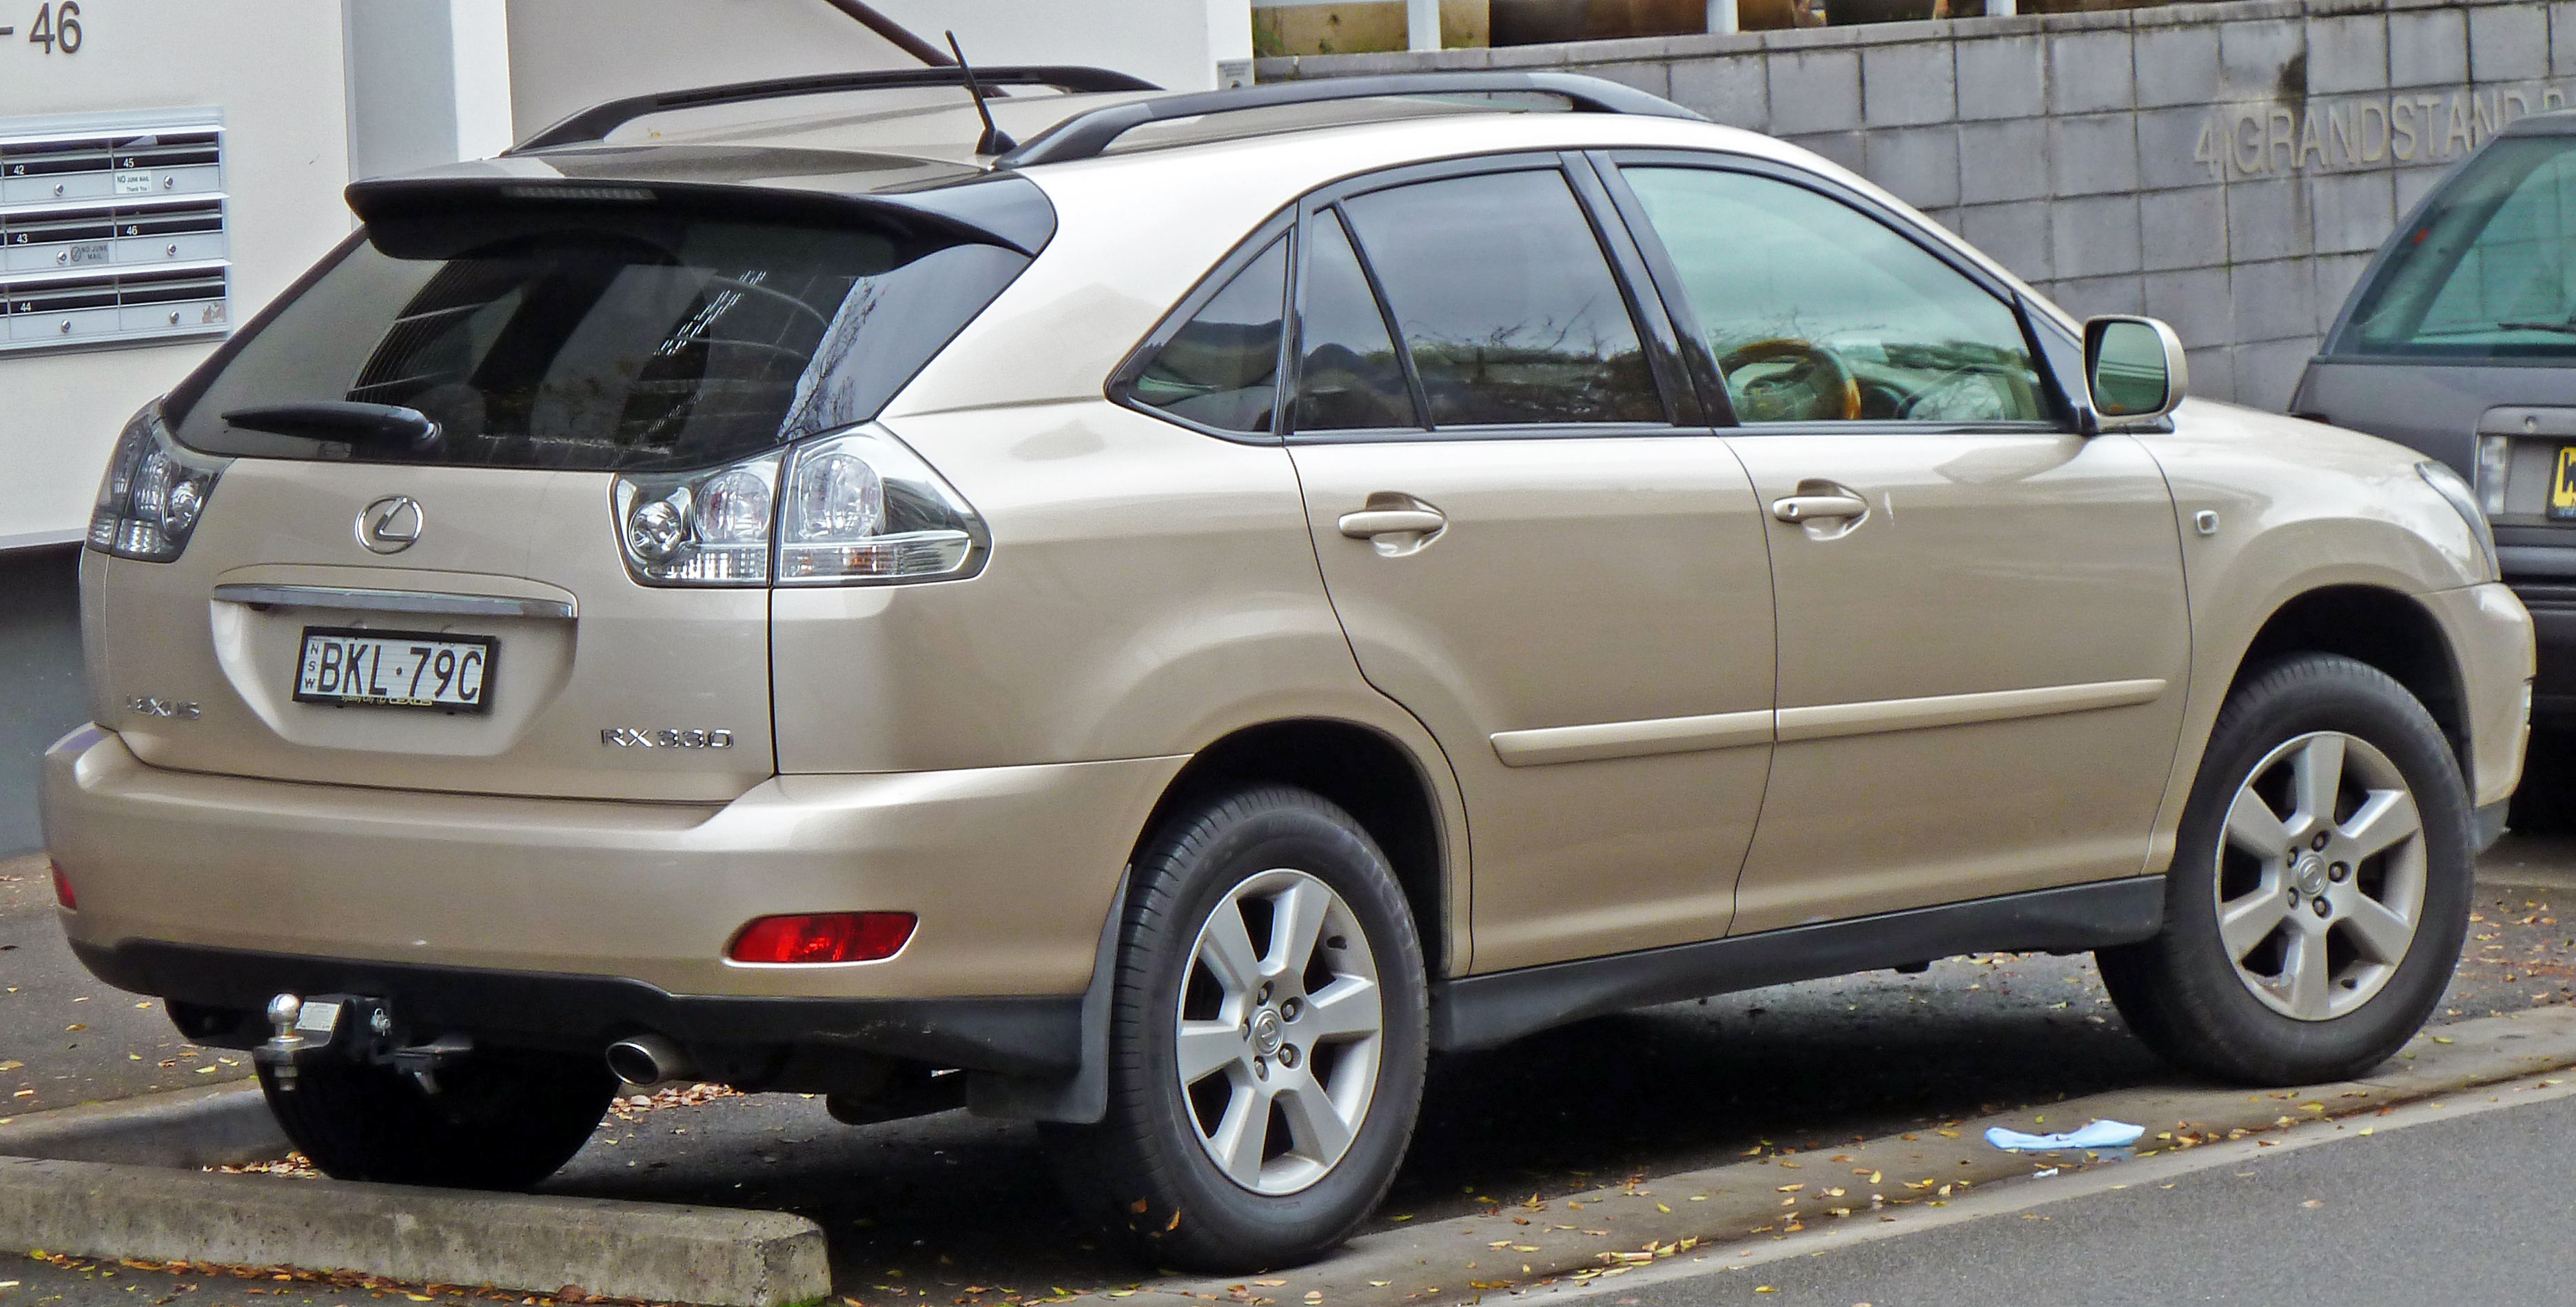 File2004 lexus rx 330 mcu38r sports luxury wagon 2010 07 13 02 file2004 lexus rx 330 mcu38r sports luxury wagon 2010 07 sciox Gallery